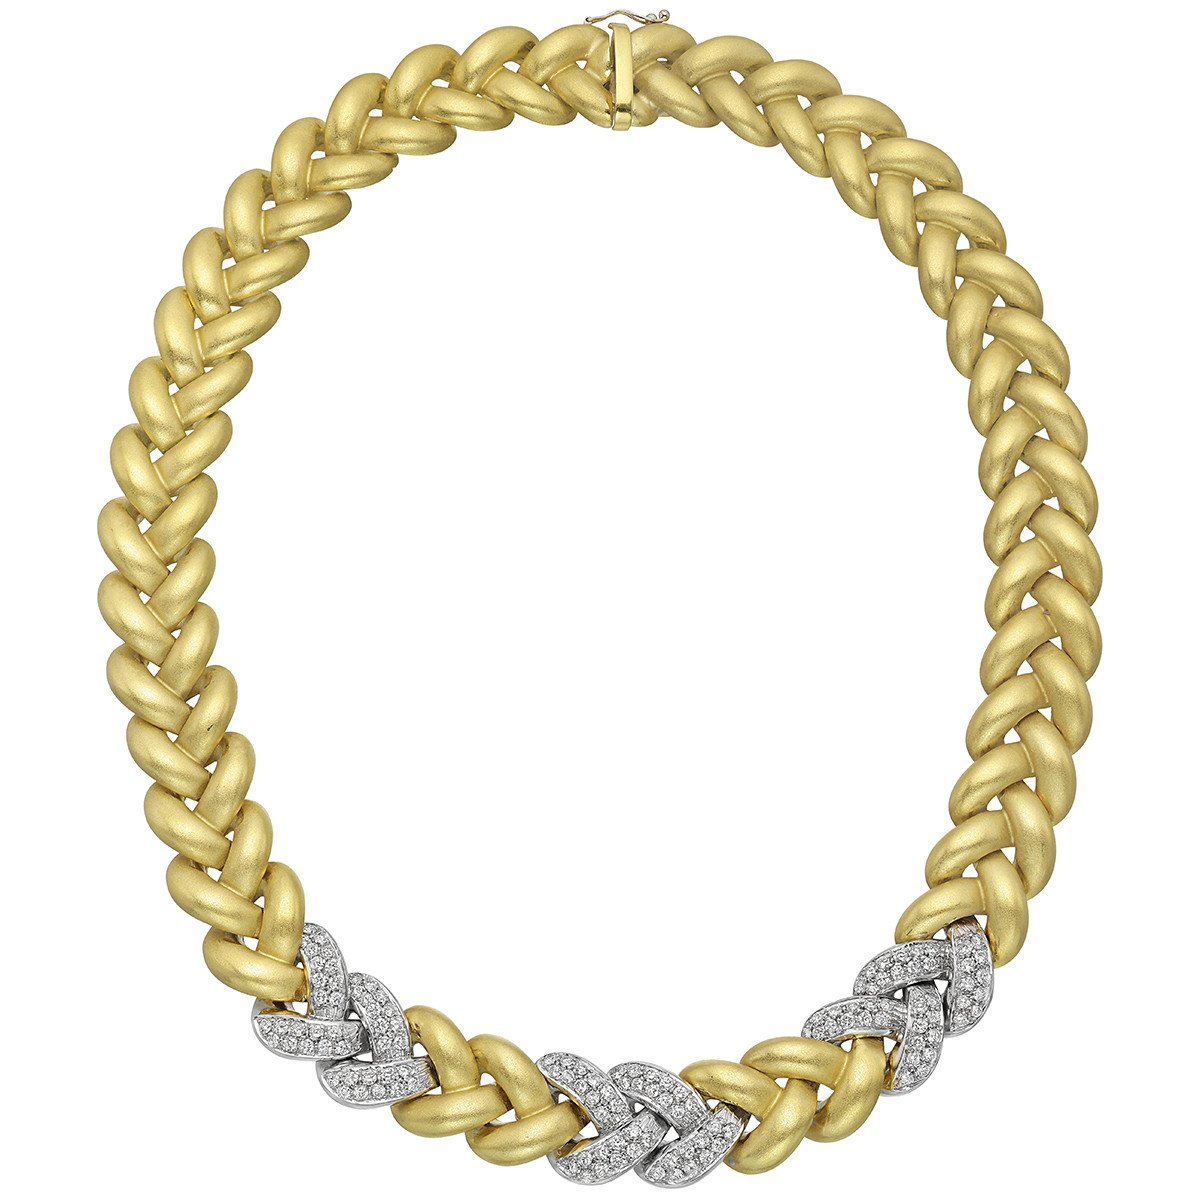 Italian 18k Gold & Diamond Link Necklace